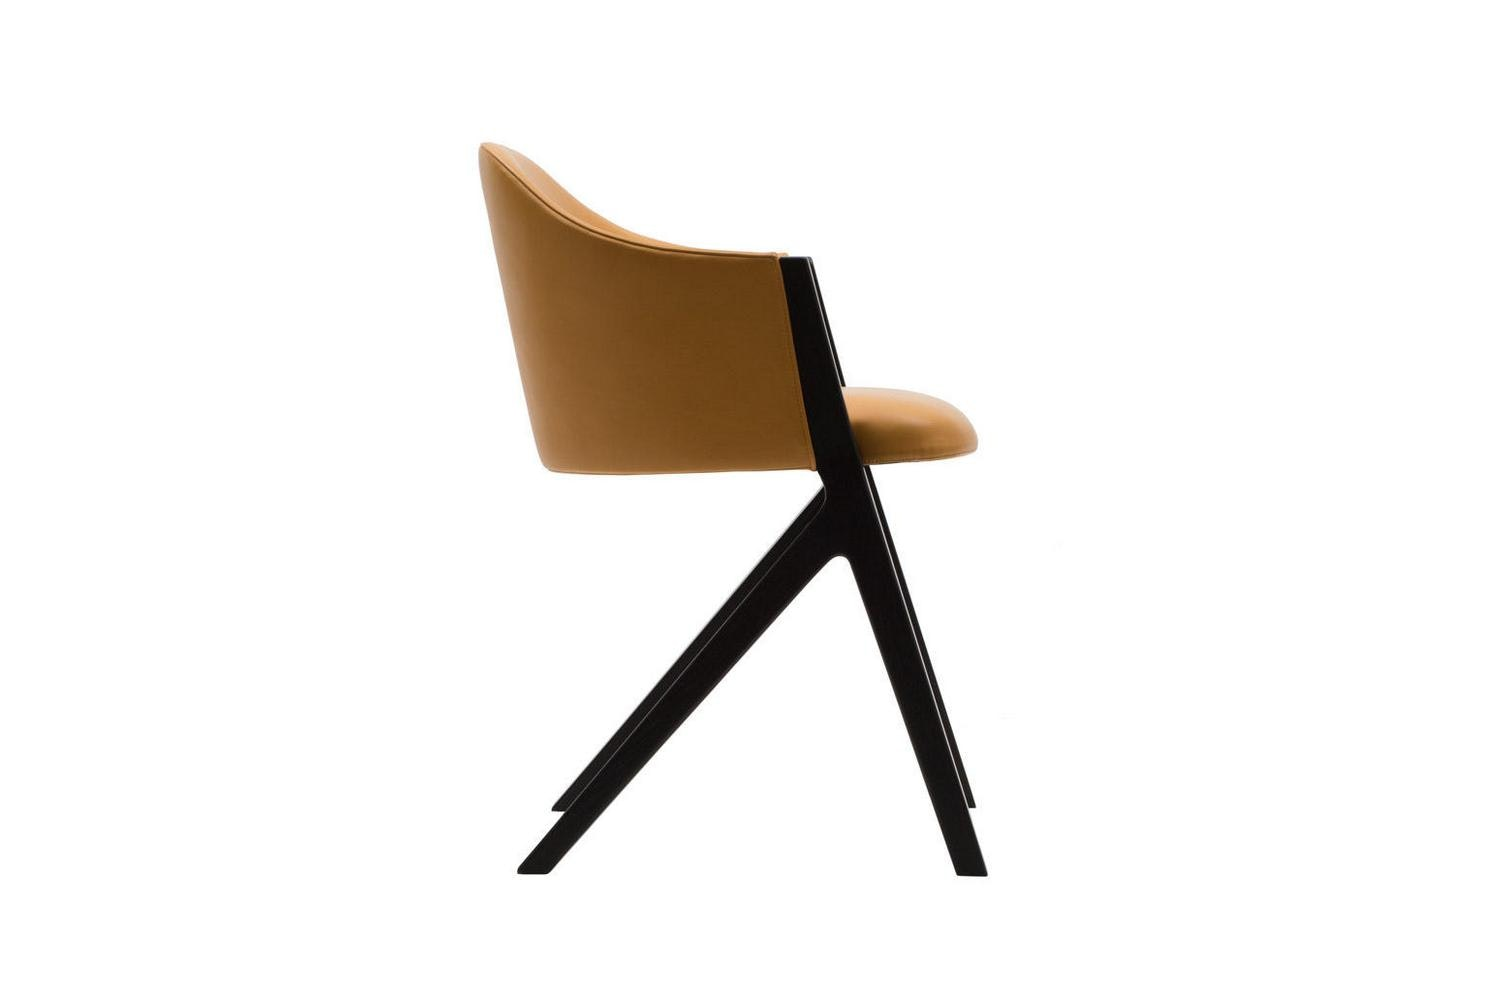 397 M10 Chair by Patrick Norguet for Cassina